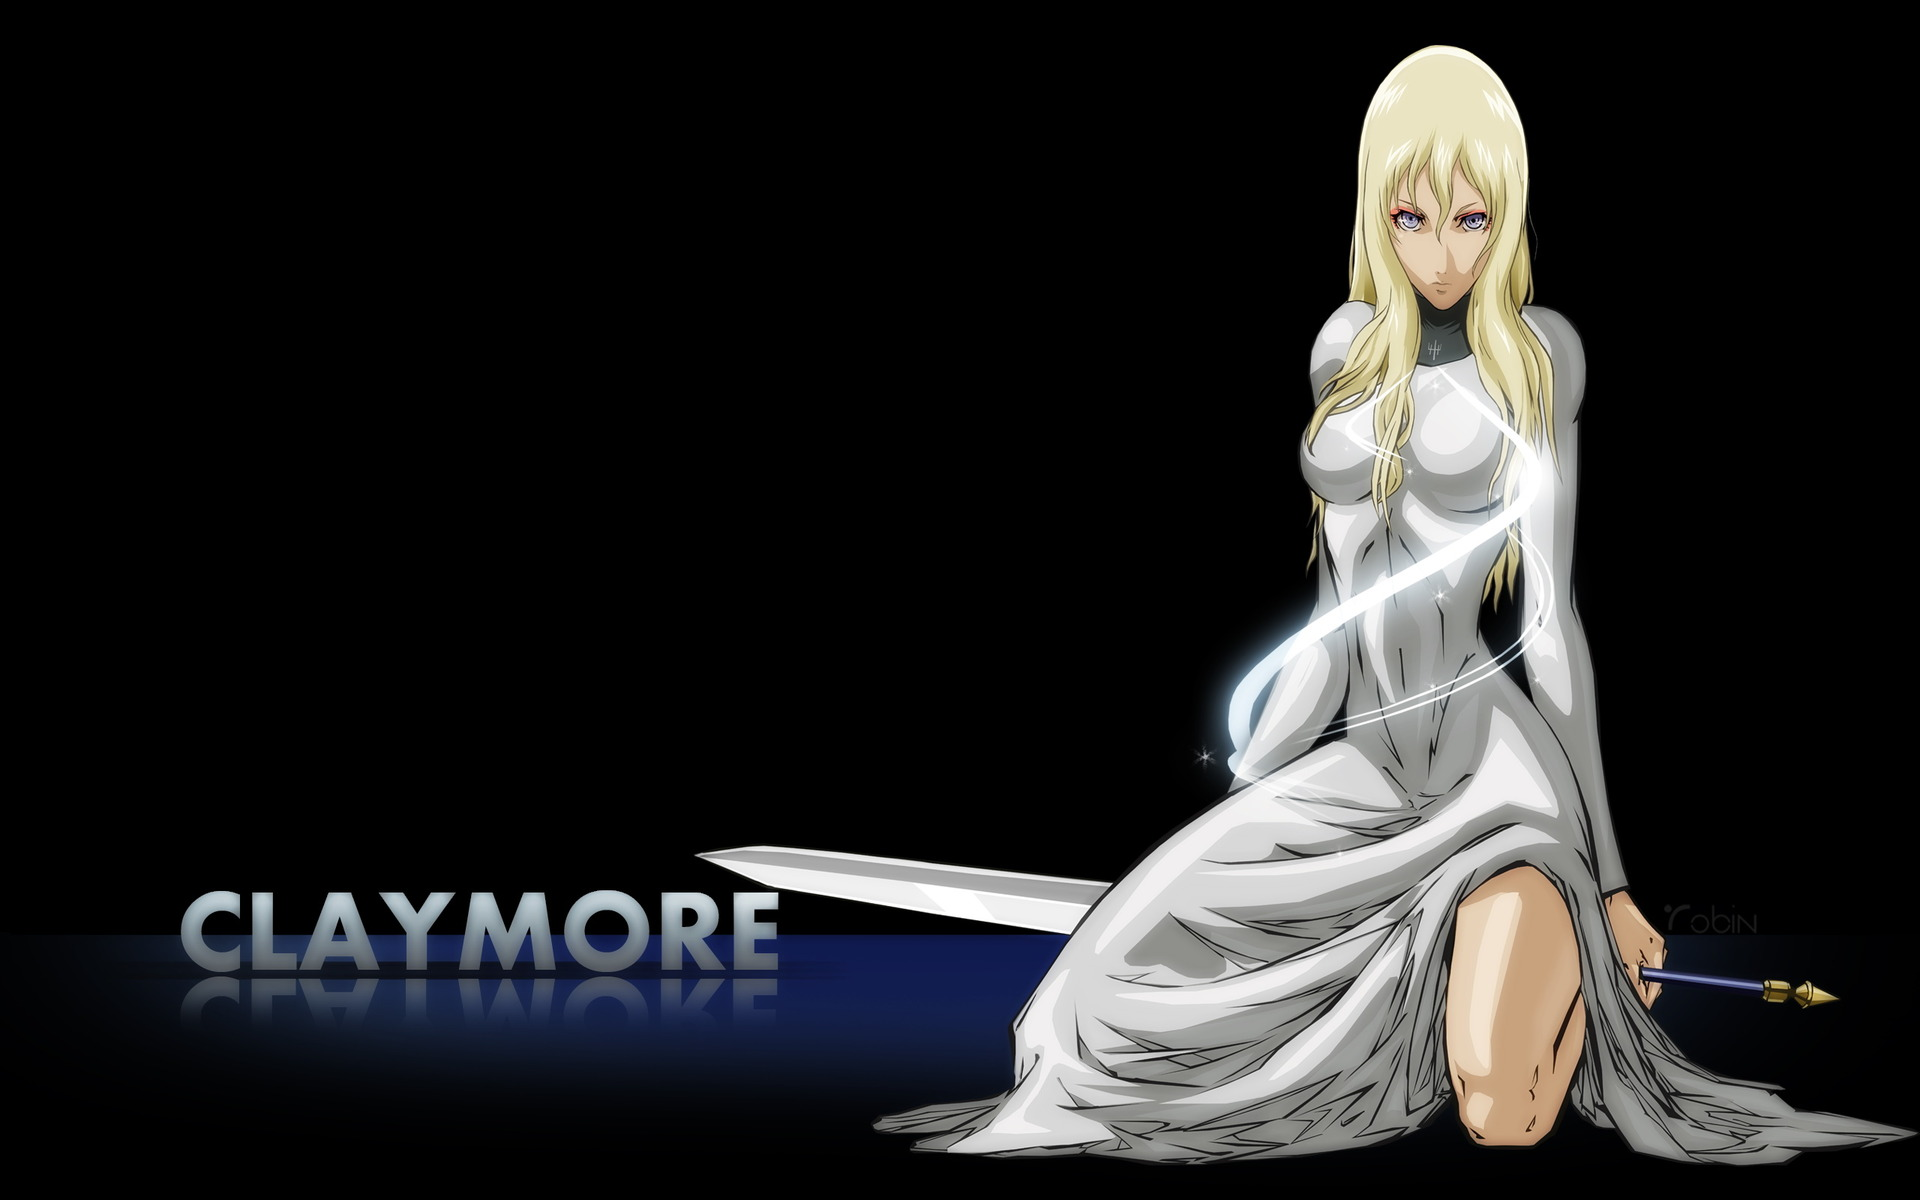 Claymore Anime Wallpaper # 14